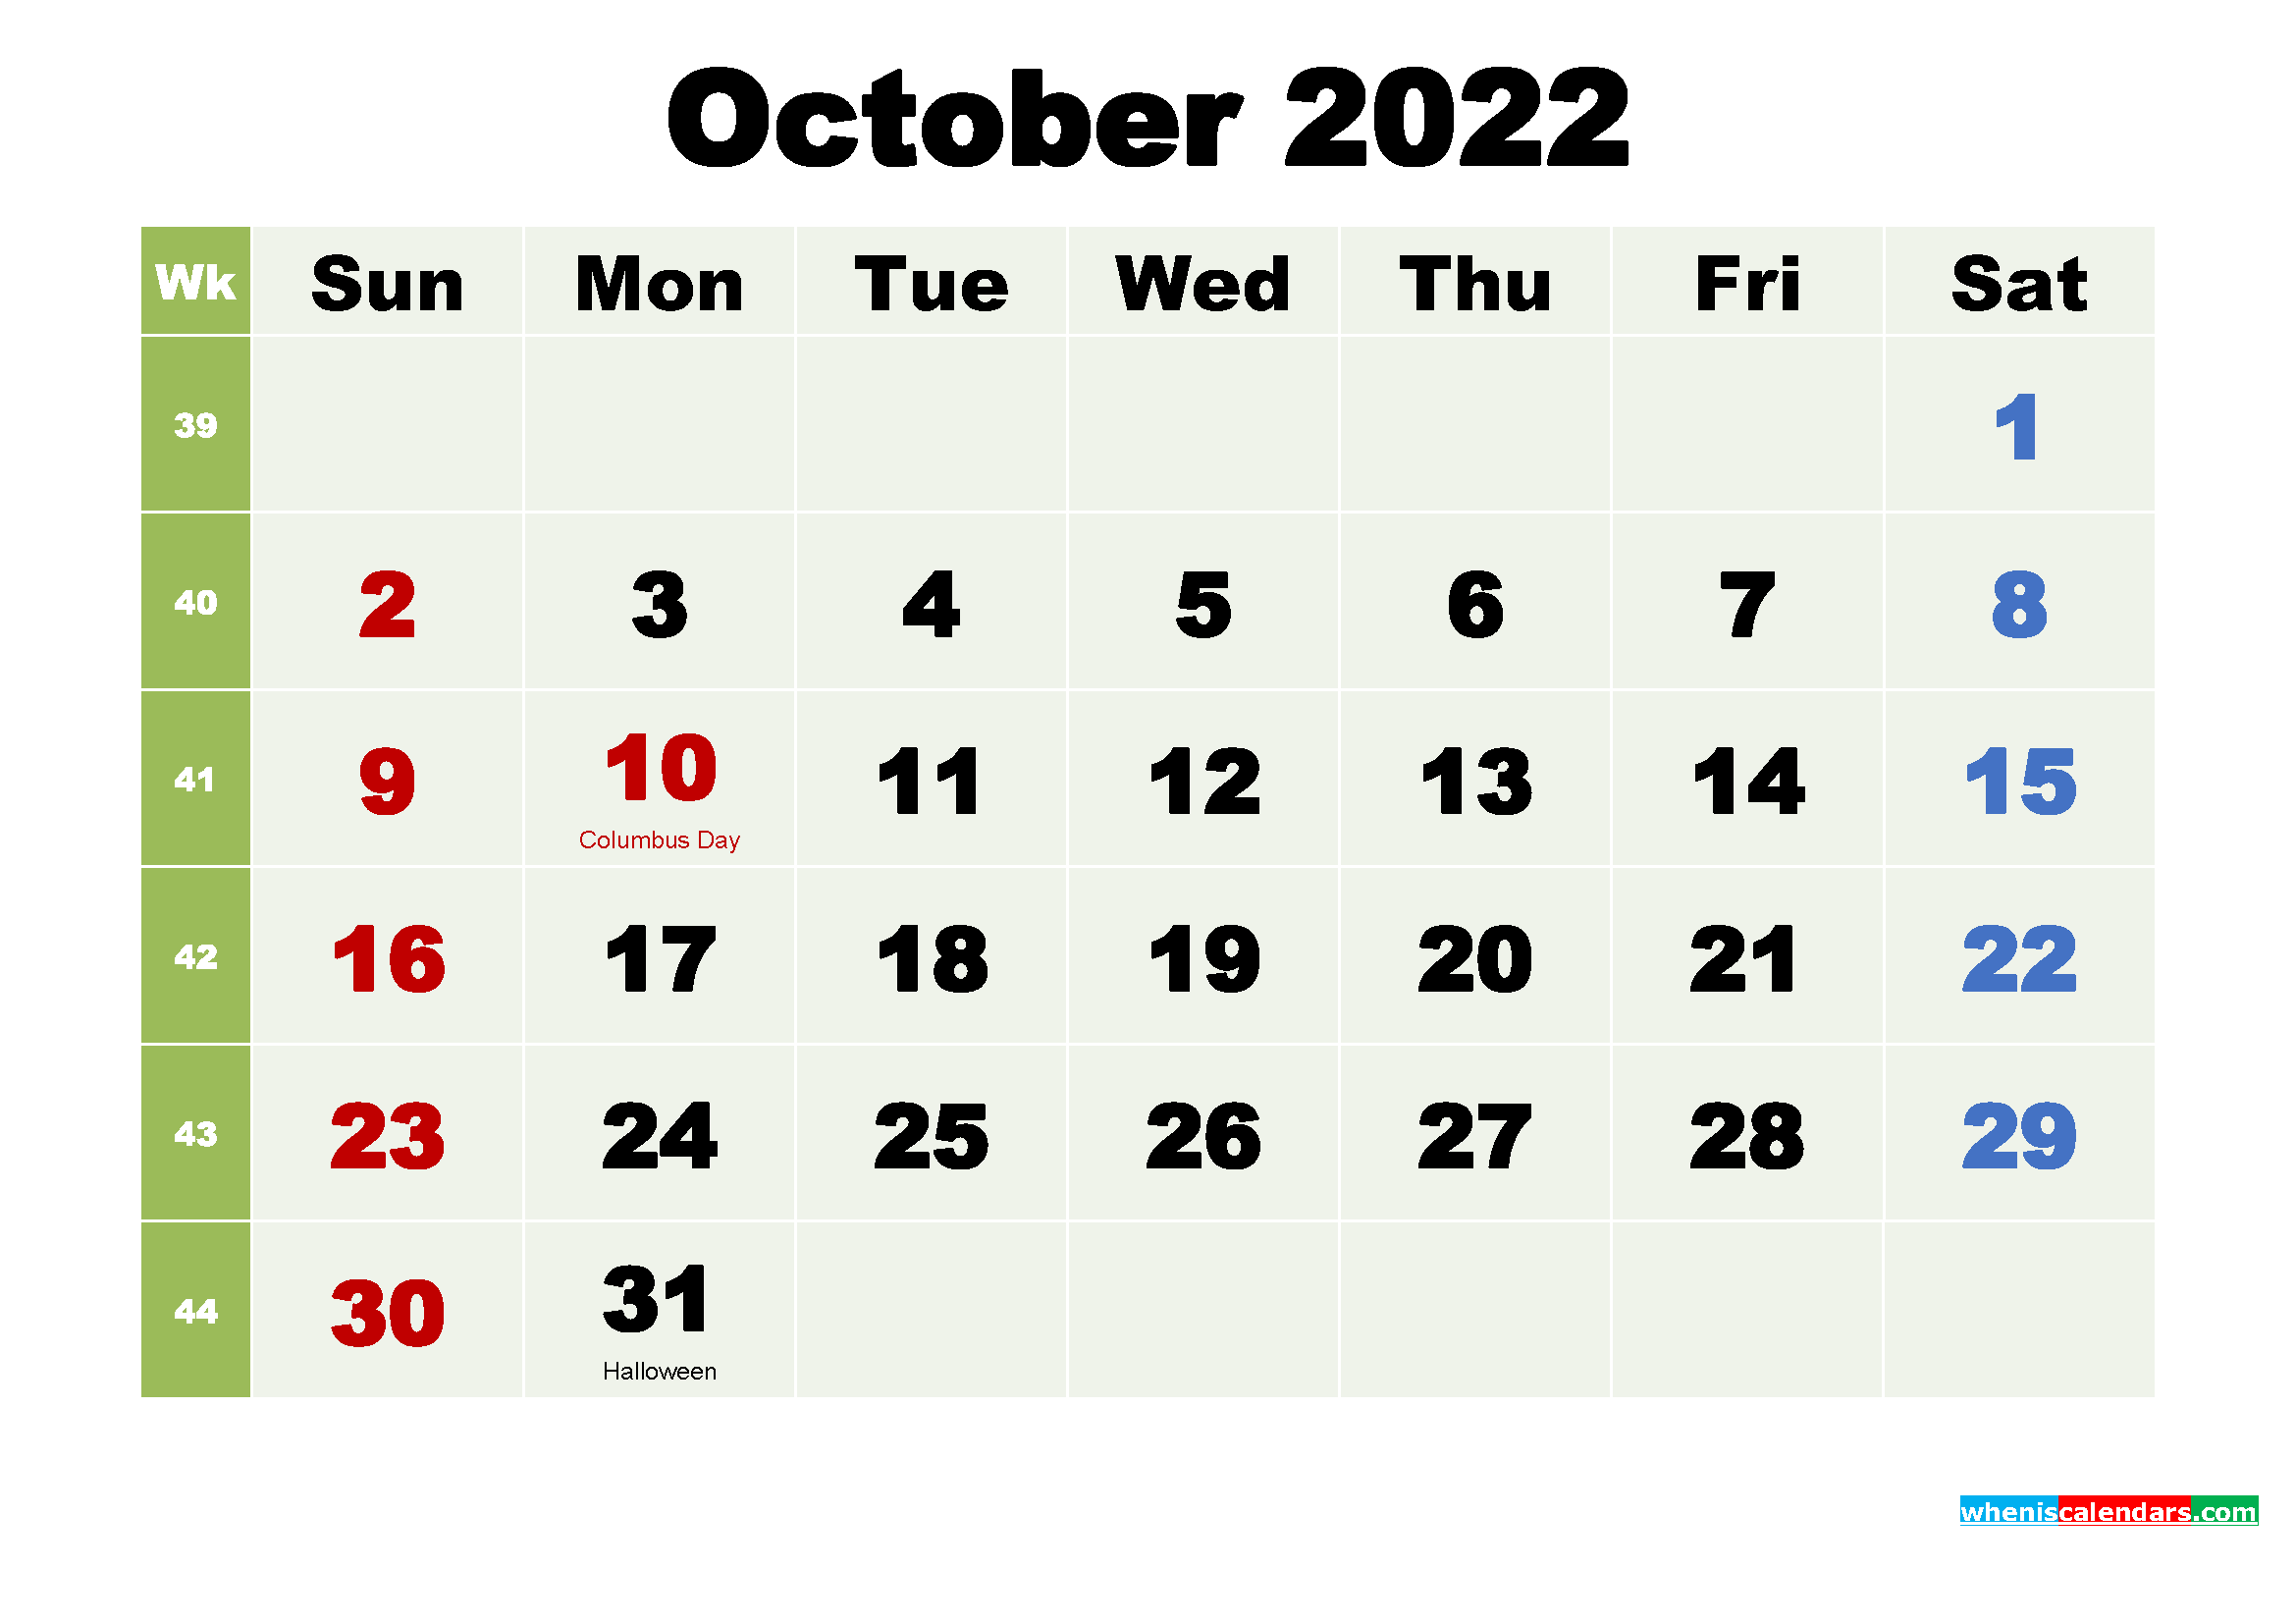 Printable October 2022 Calendar by Month